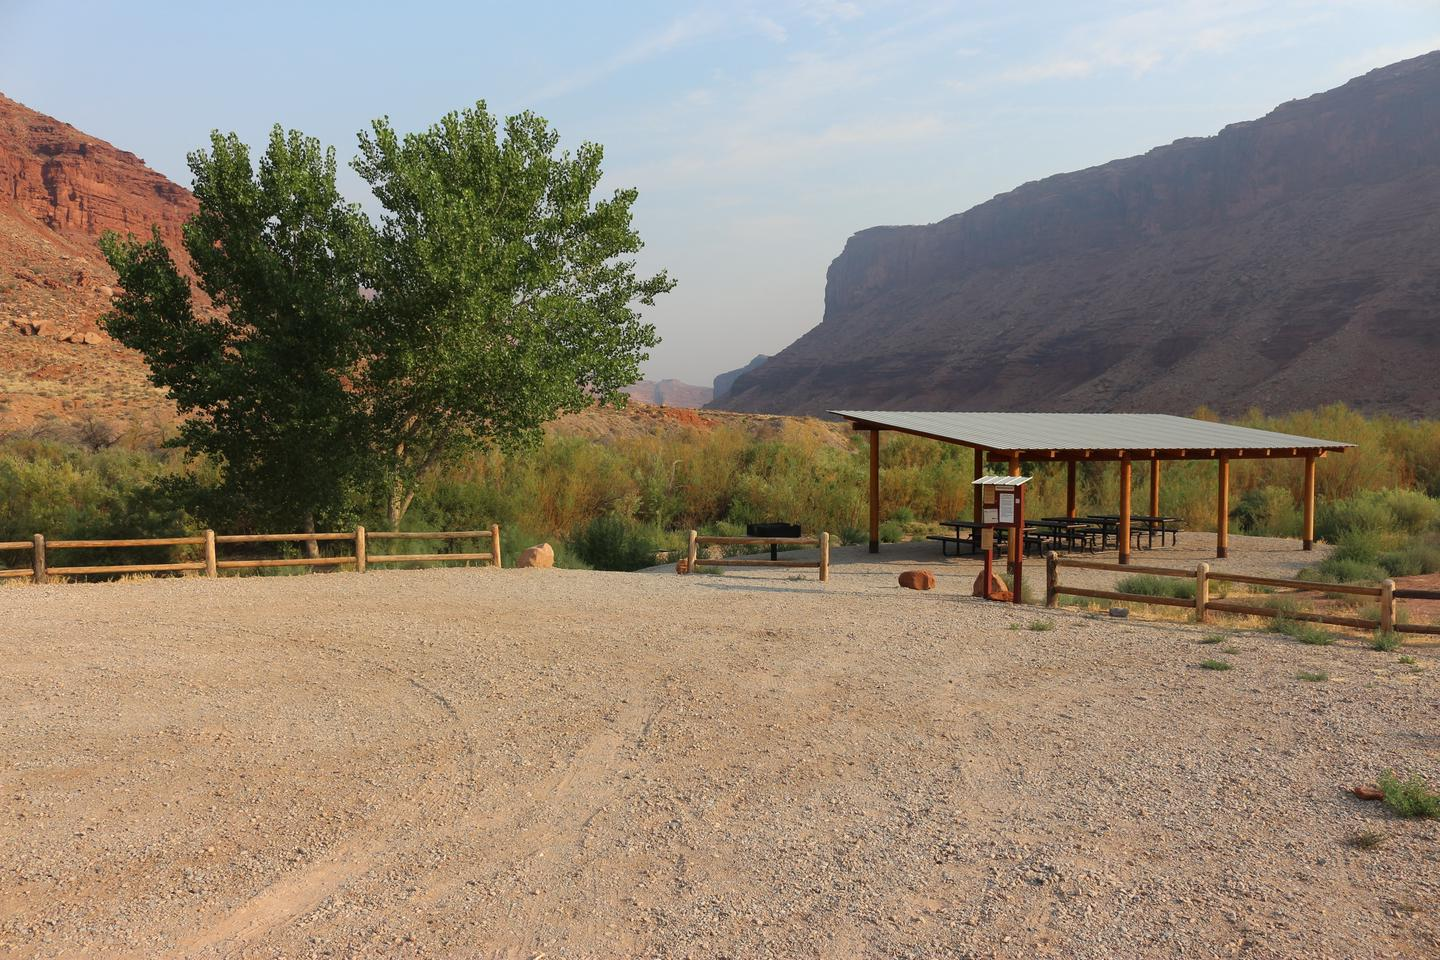 Hittle Bottom Group SitePicnic tables, shade shelter, group site sign, and parking area.